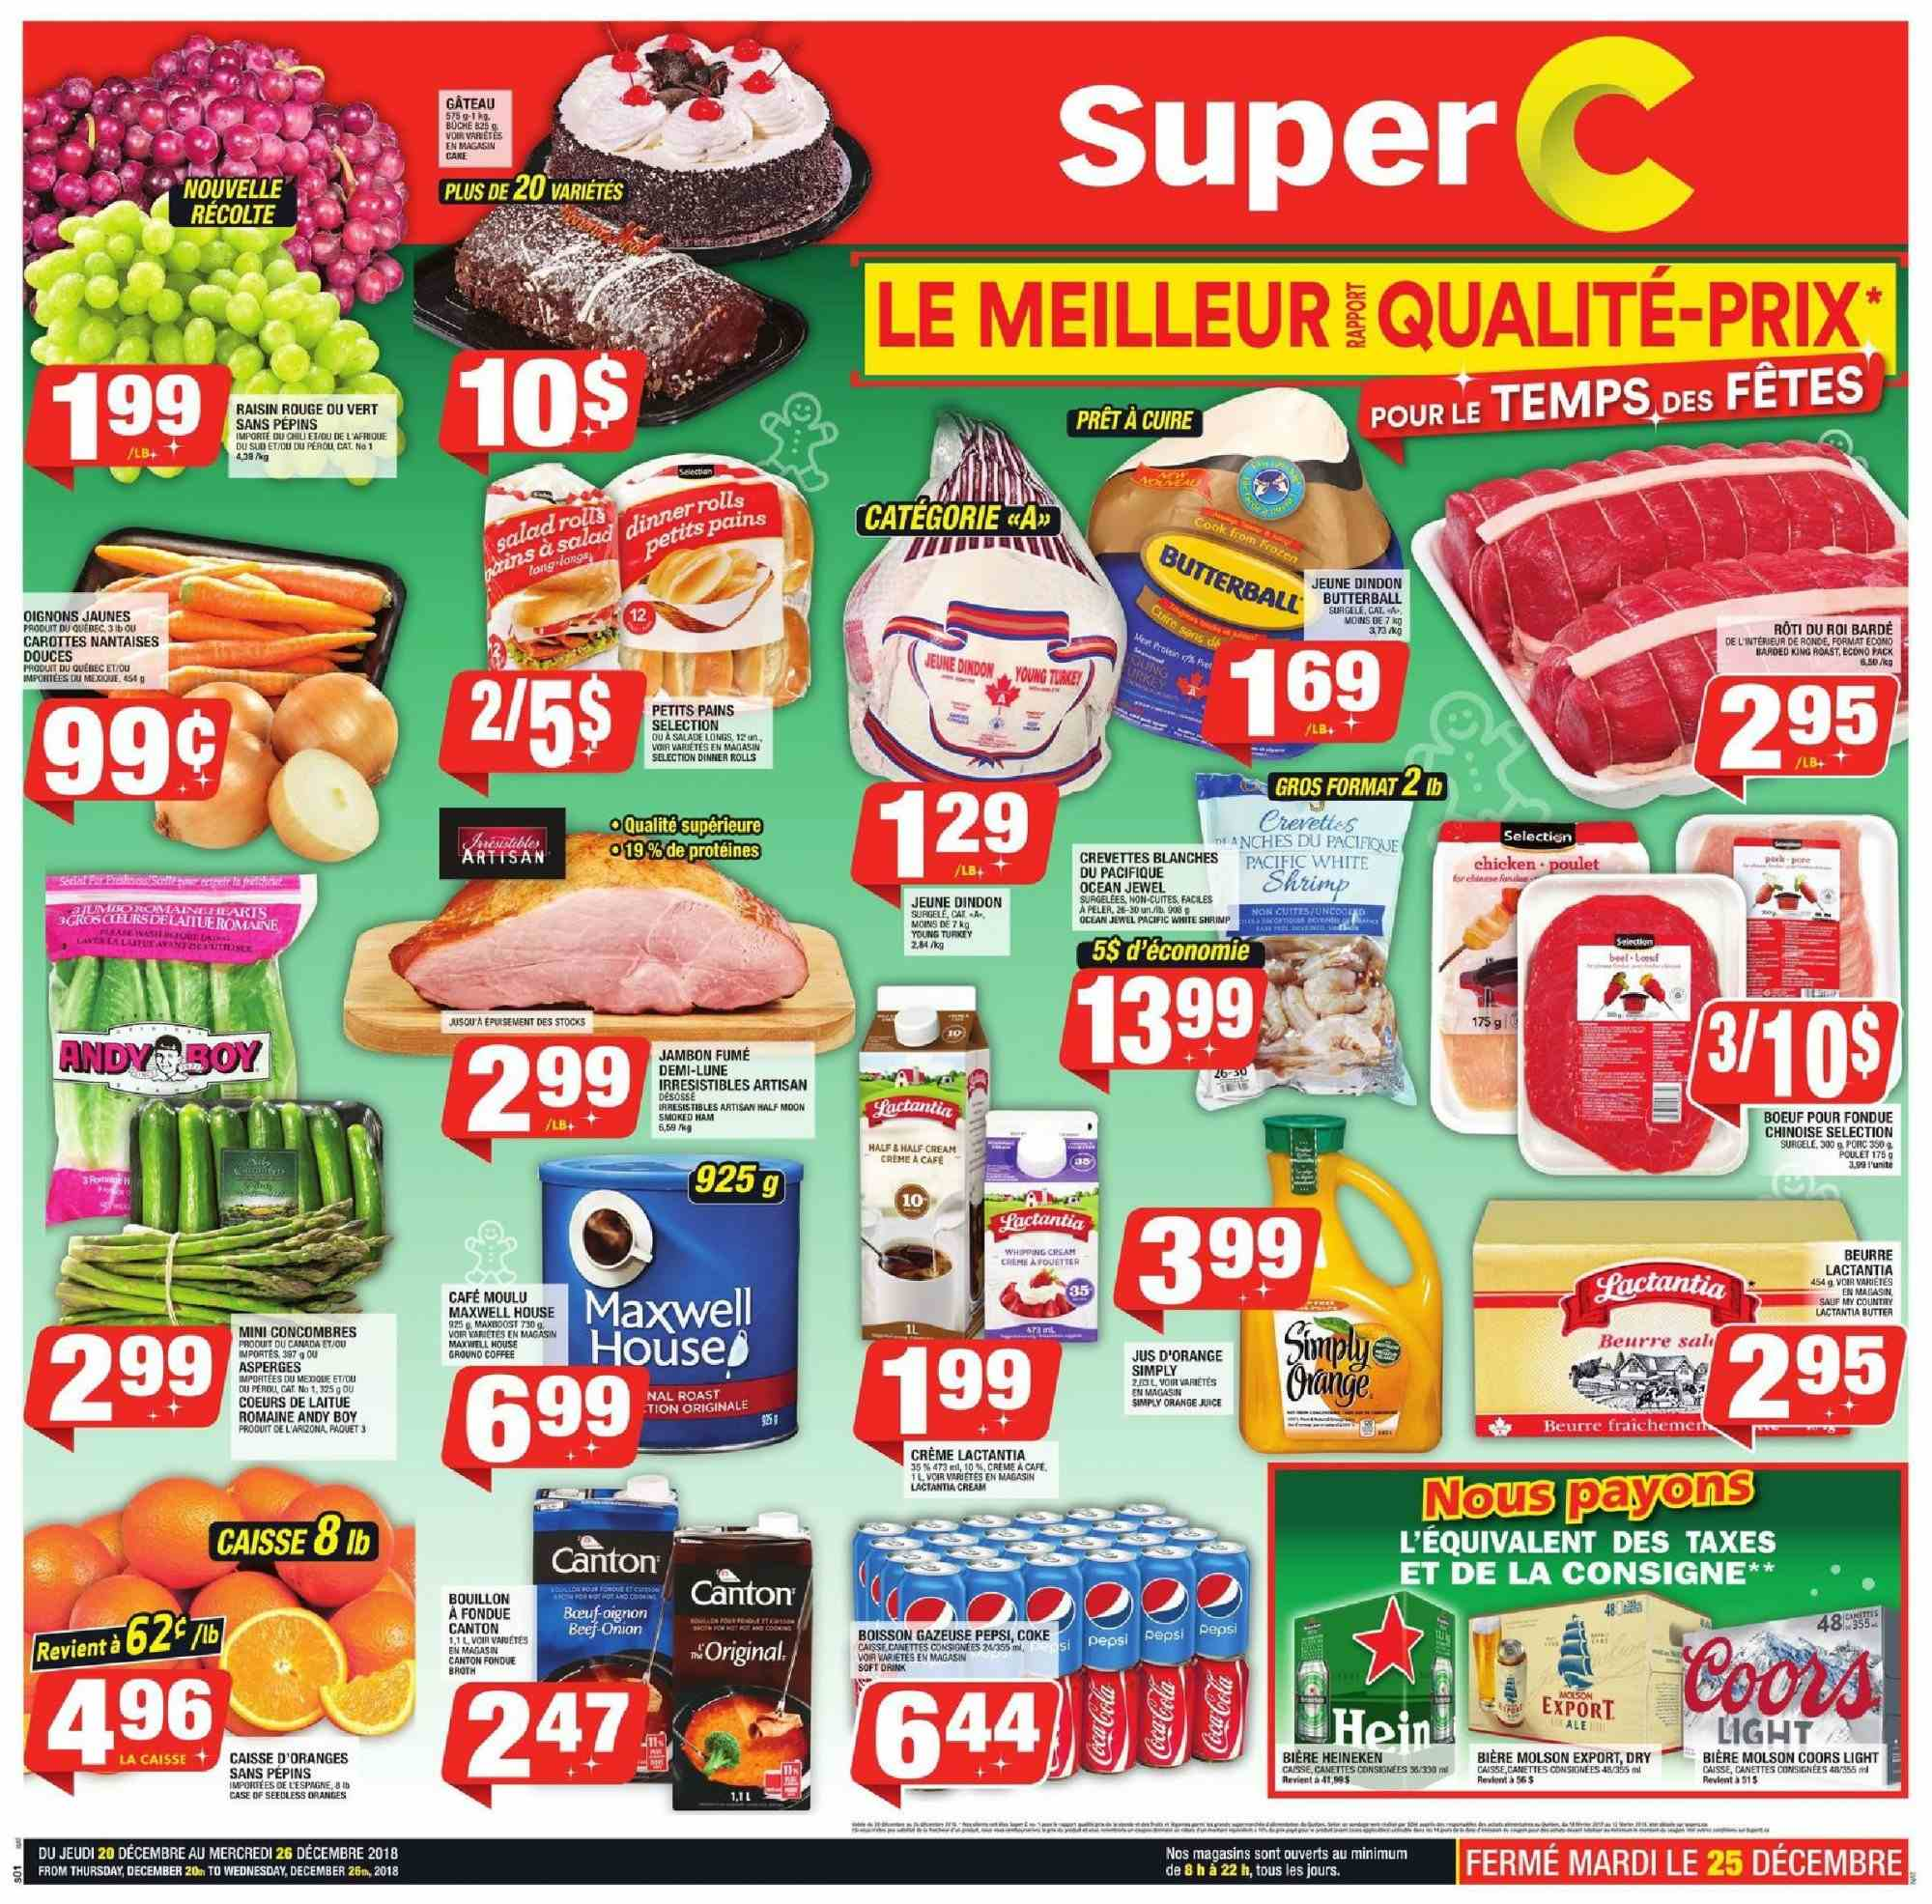 Super C Flyer - December 20, 2018 - December 26, 2018 - Sales products - bouillon, butterball, coca cola, cream, dinner rolls, maxwell house, shrimp, ham, pepsi, orange juice, oranges, juice, cake, car, cafe, porc, jambon, beurre, bière, bœuf, boisson, café moulu, caisse, carotte, crevette, fondue, gâteau, jus d'orange, oignons, rouge, jus. Page 1.